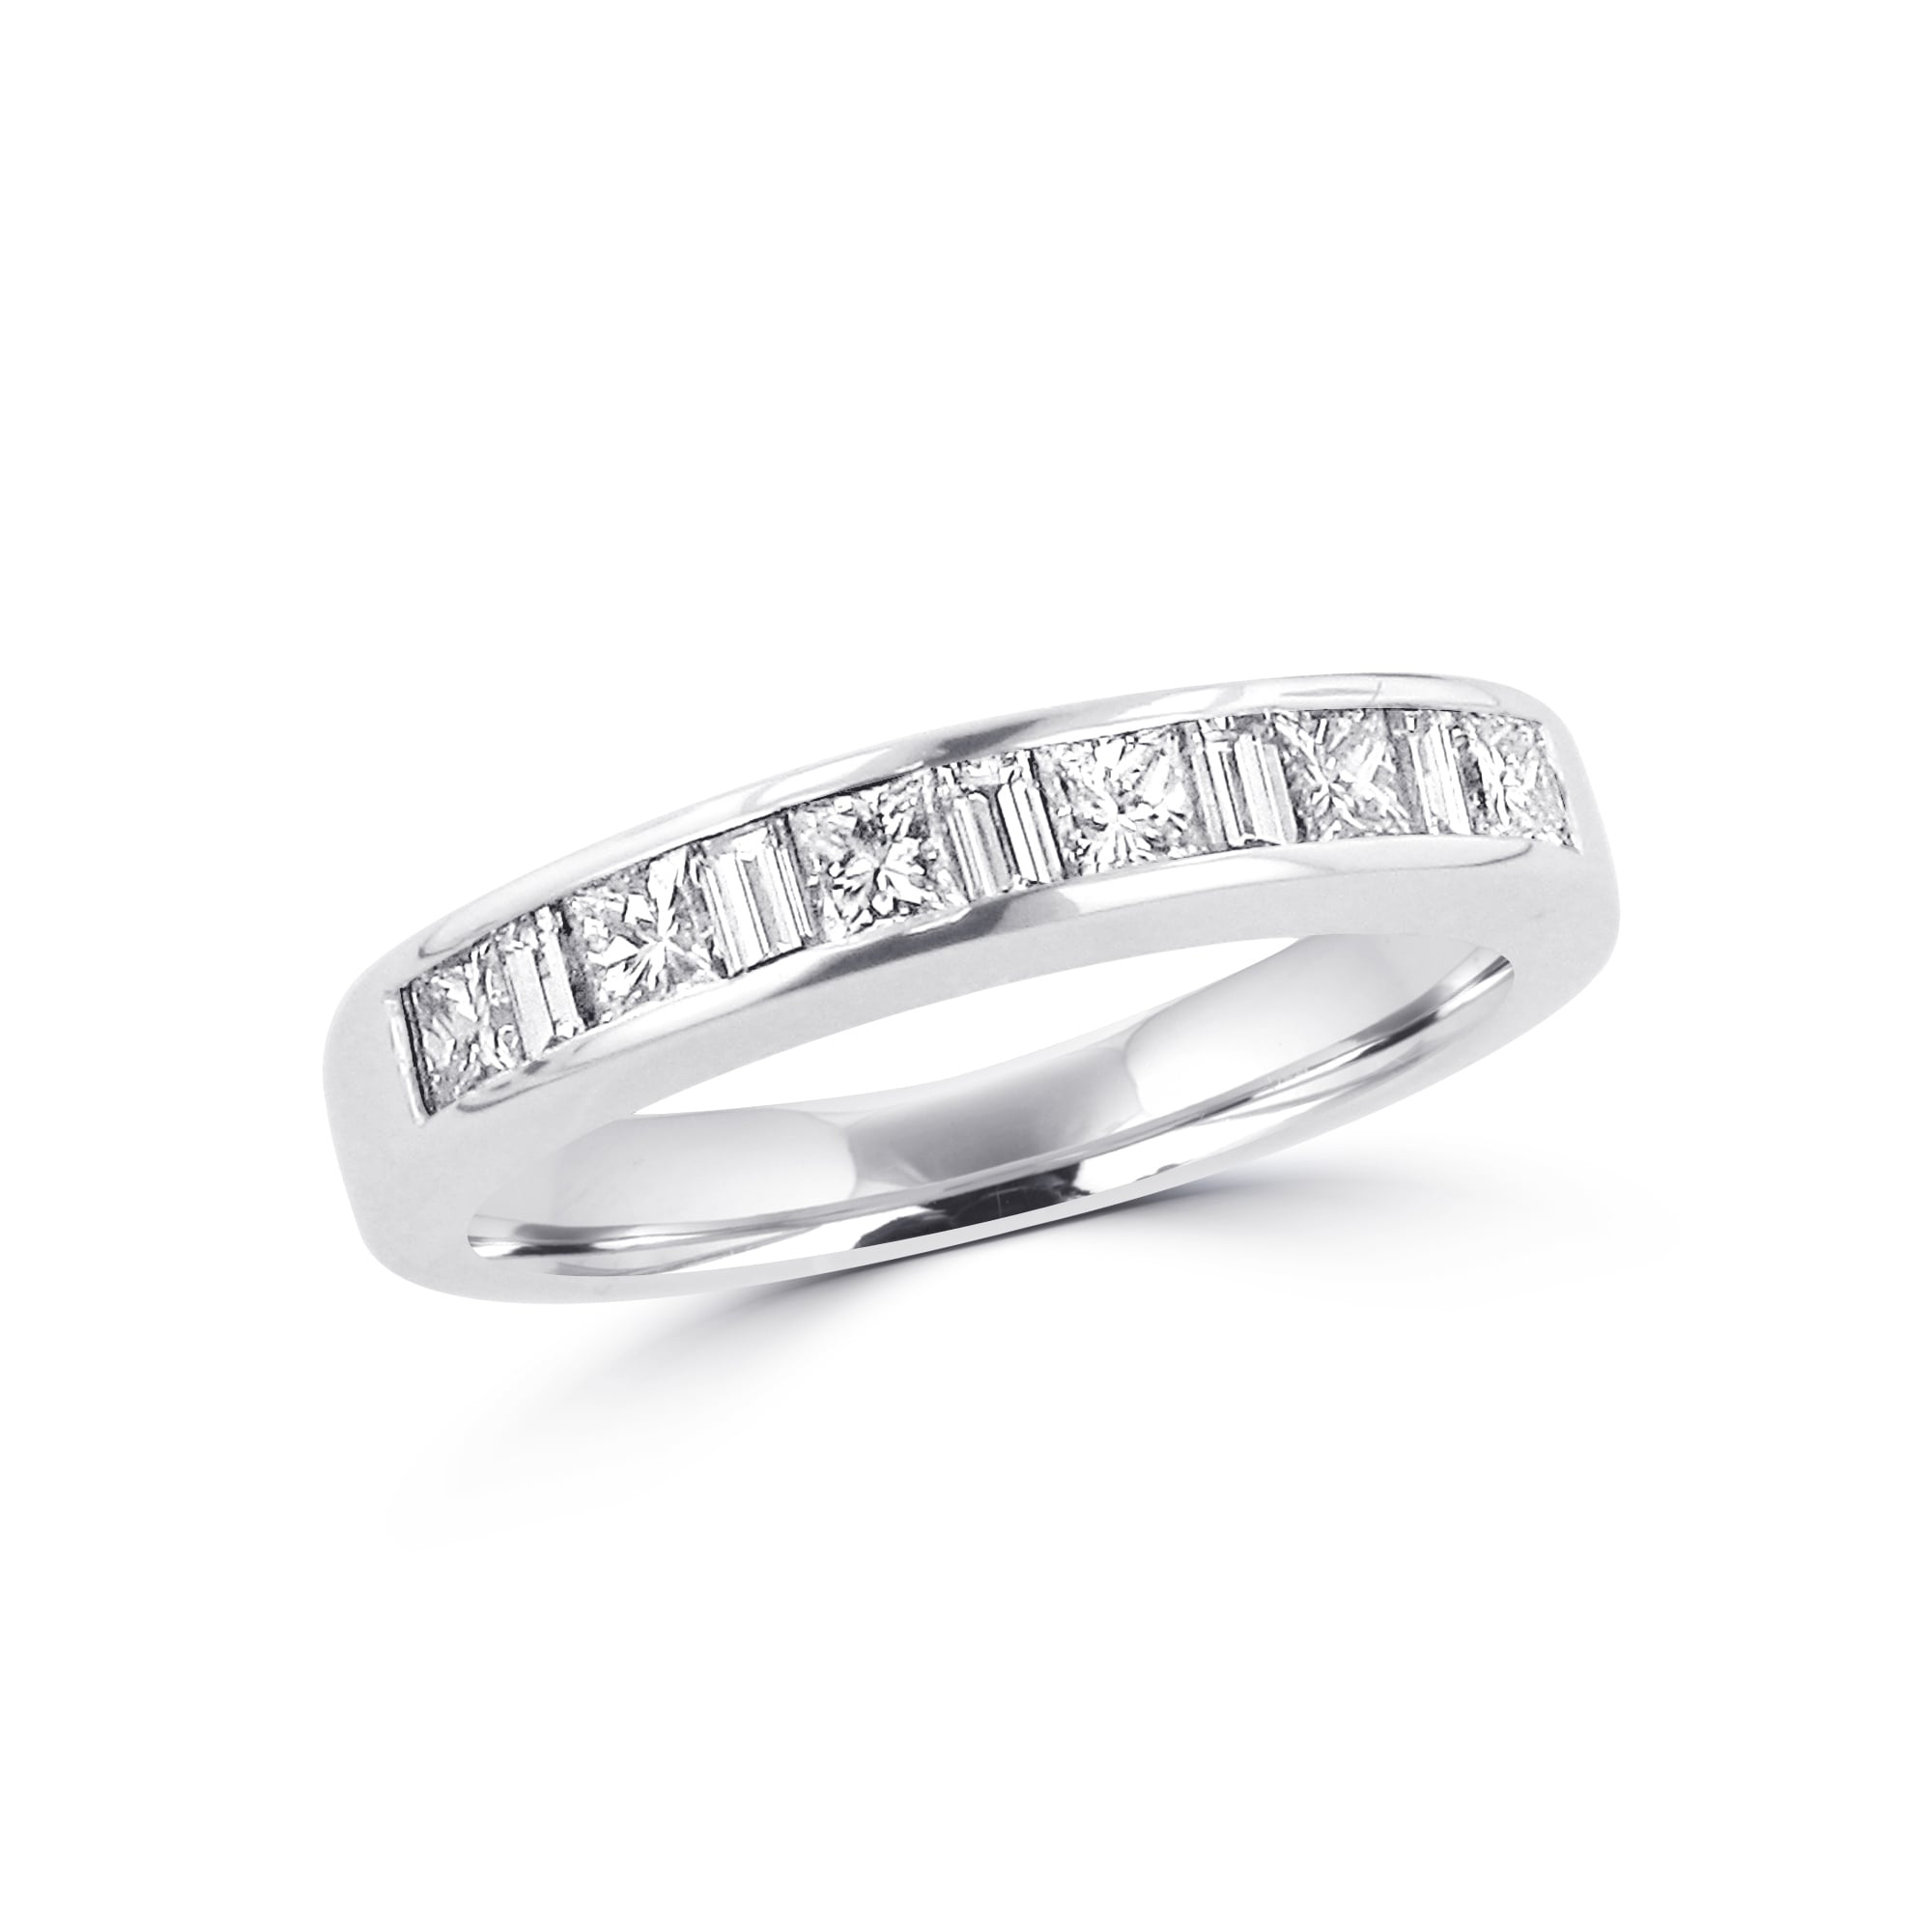 18ct White Gold Princess And Baguette Diamond Eternity Ring (View 15 of 25)